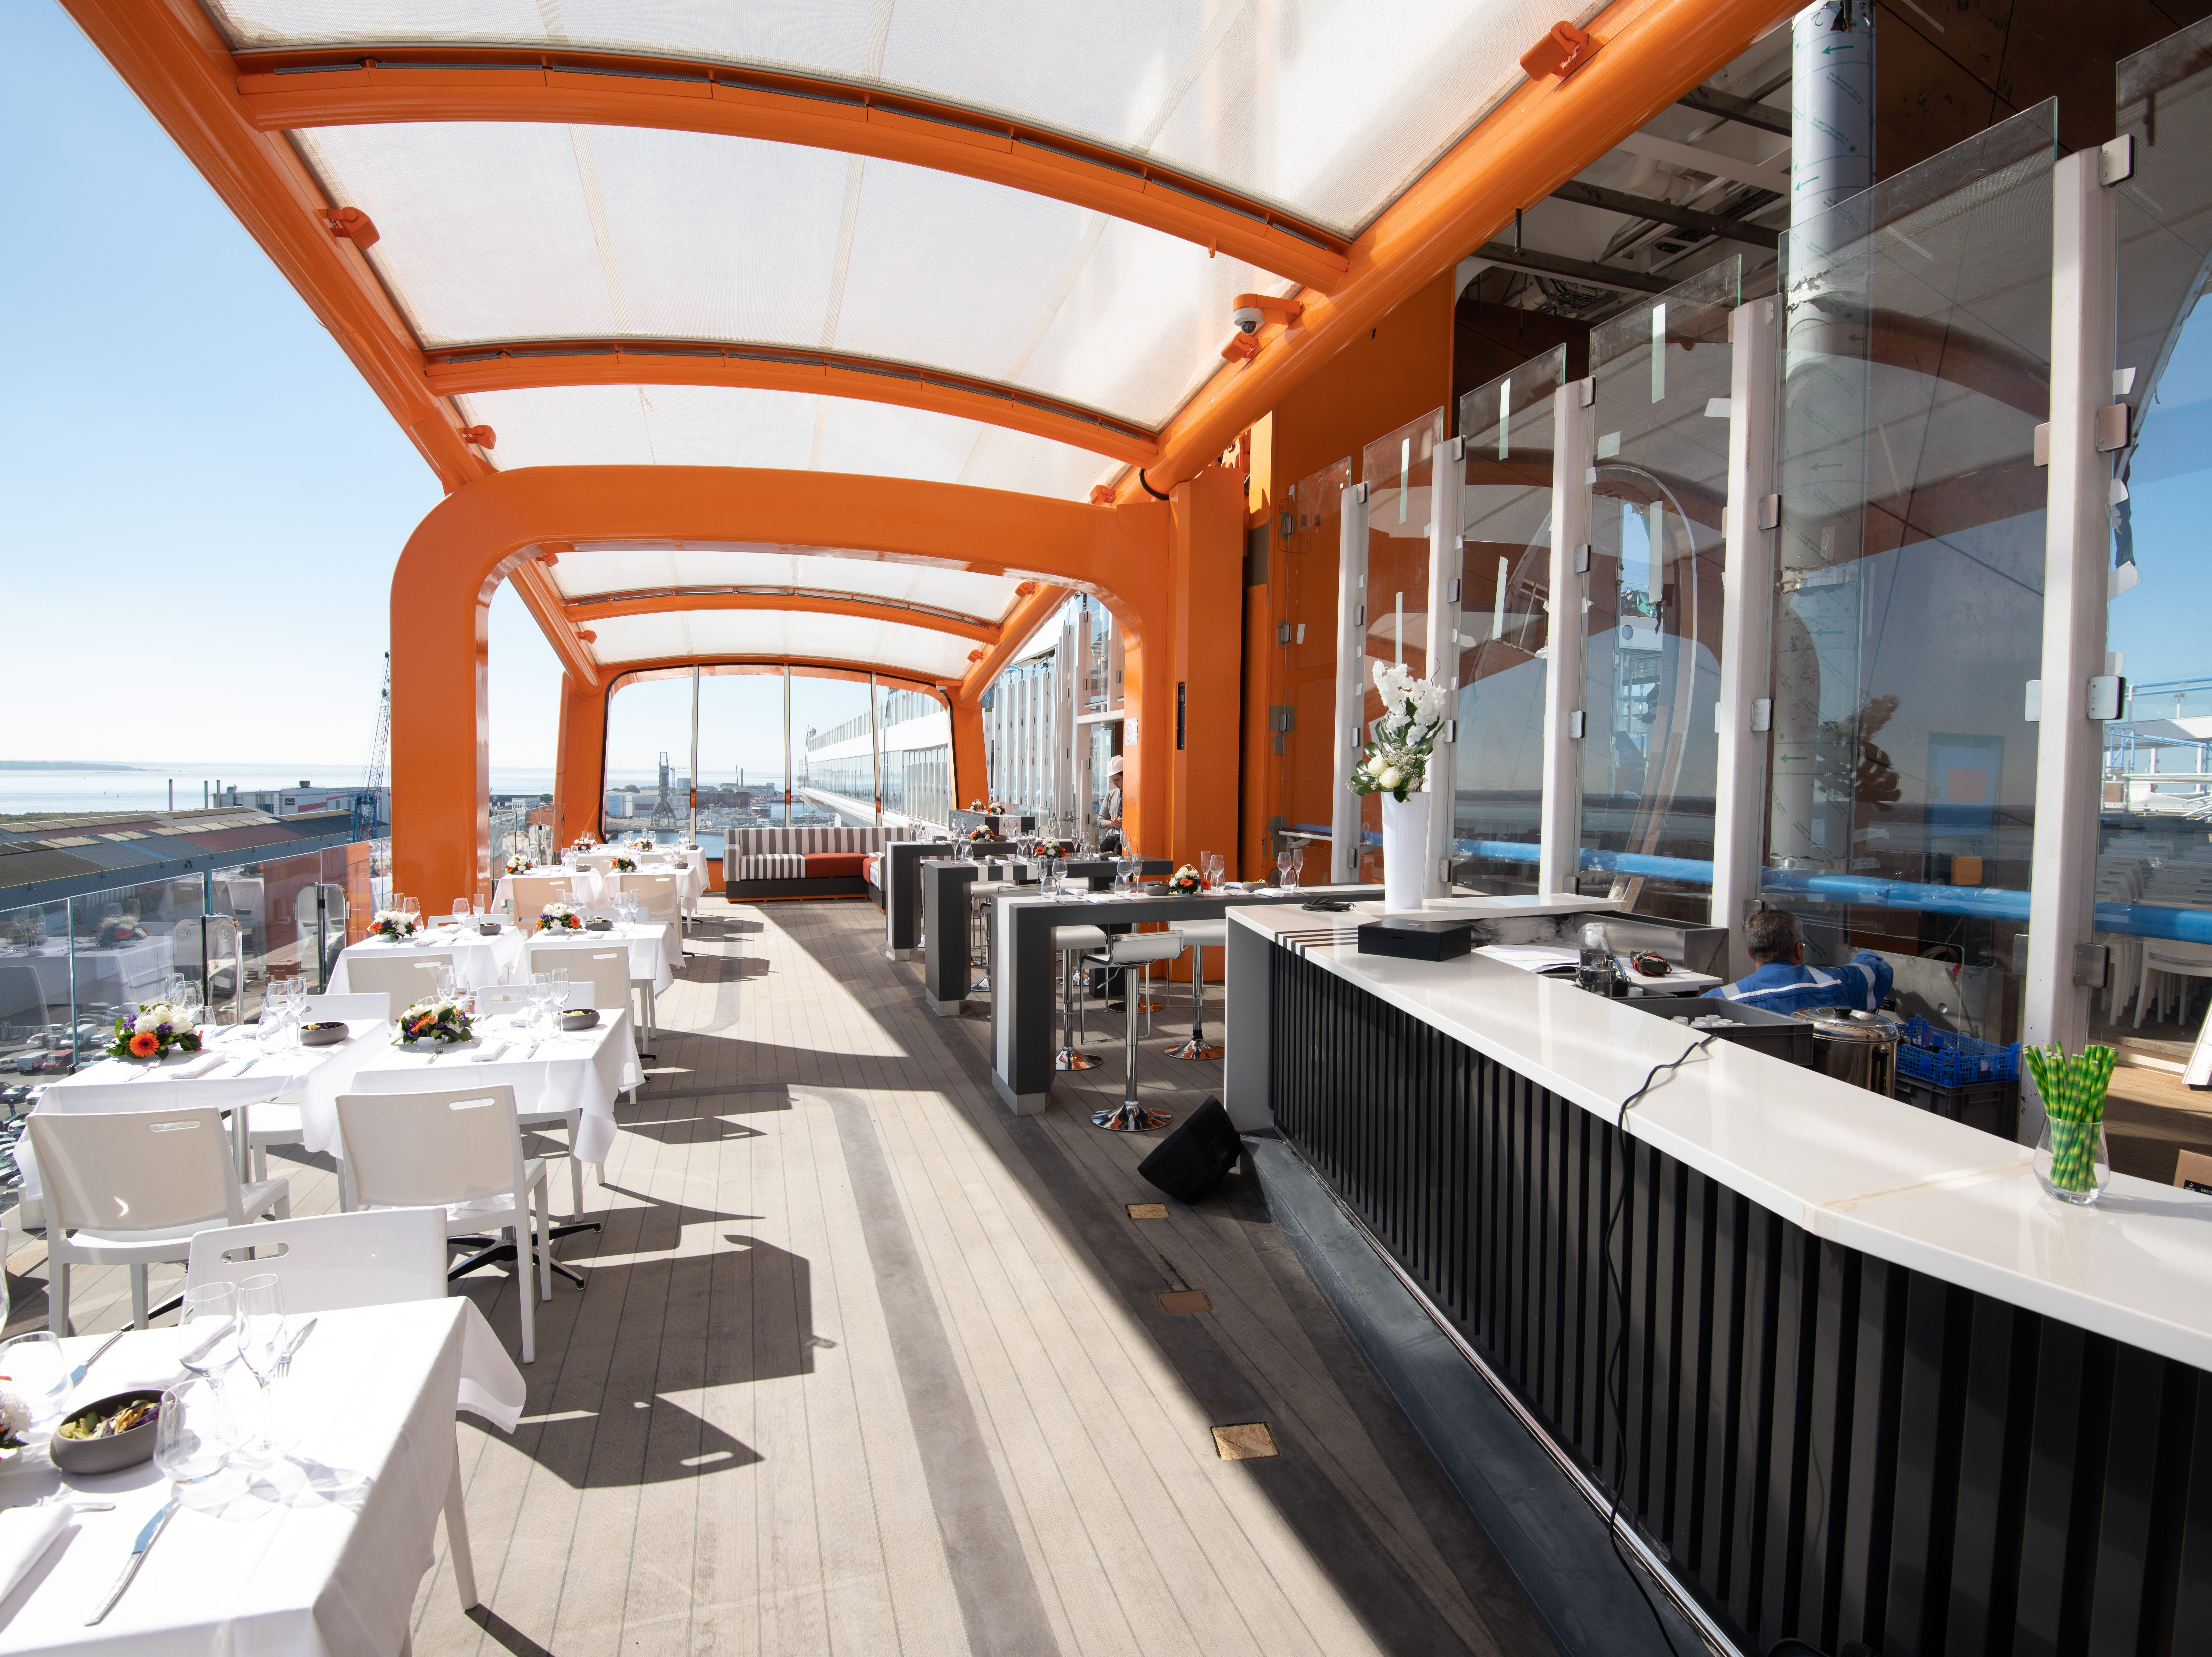 Perched on the starboard side of Celebrity Edge, the Magic Carpet platform has a a permanent, built-in bar facing out to the sea.